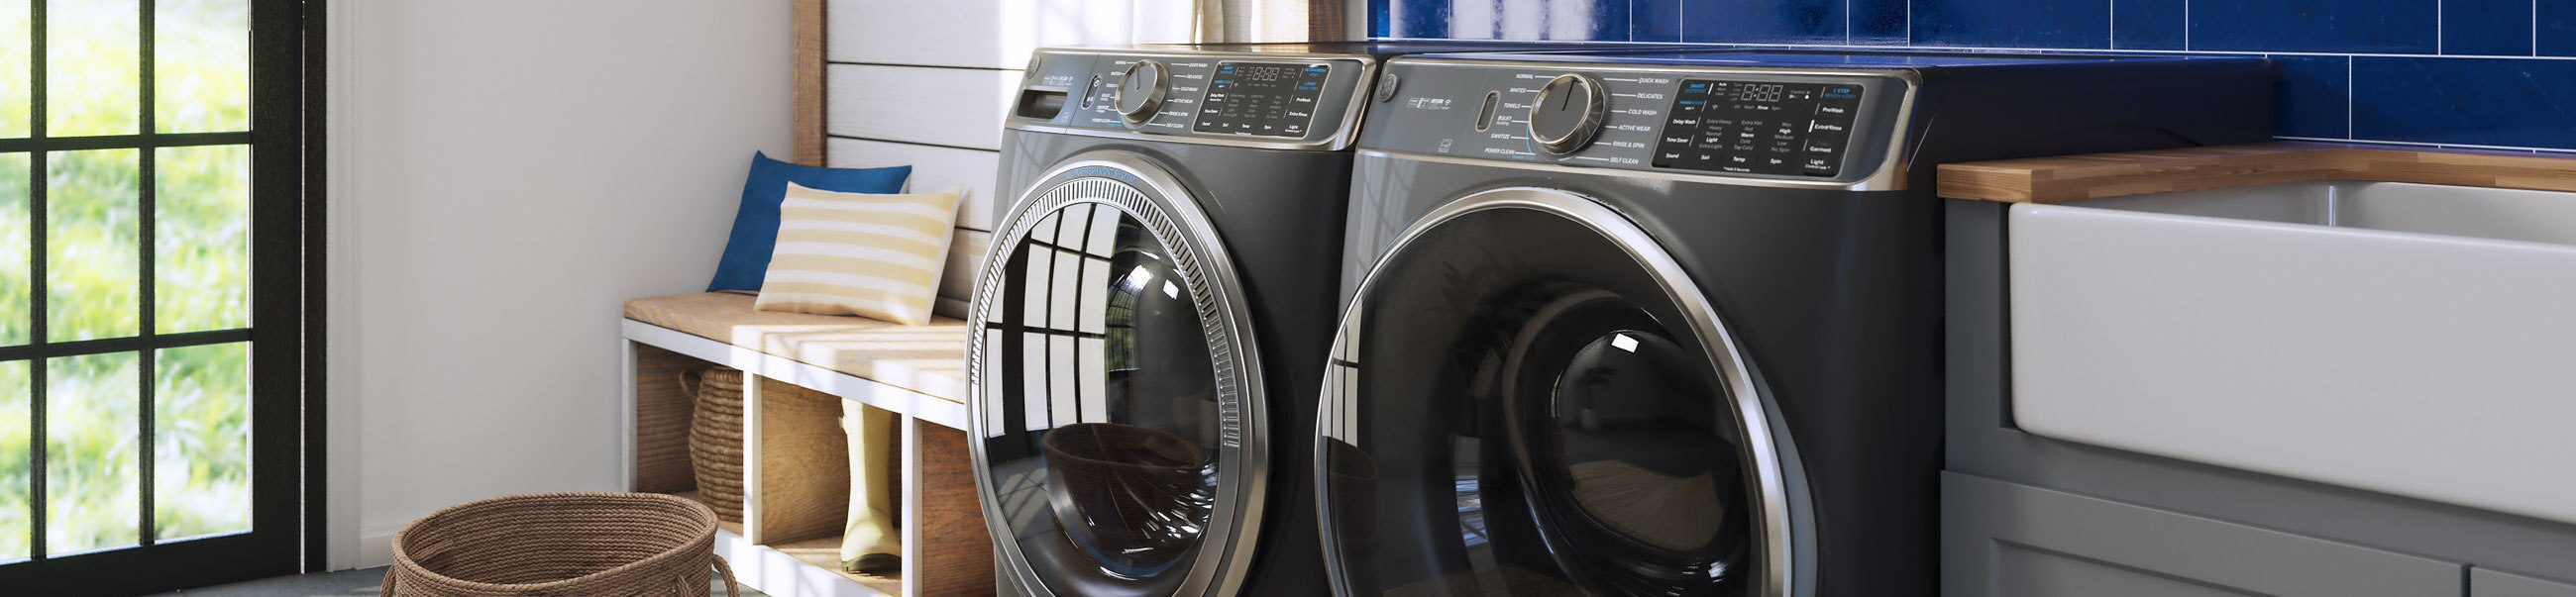 UltraFresh washer and dryer